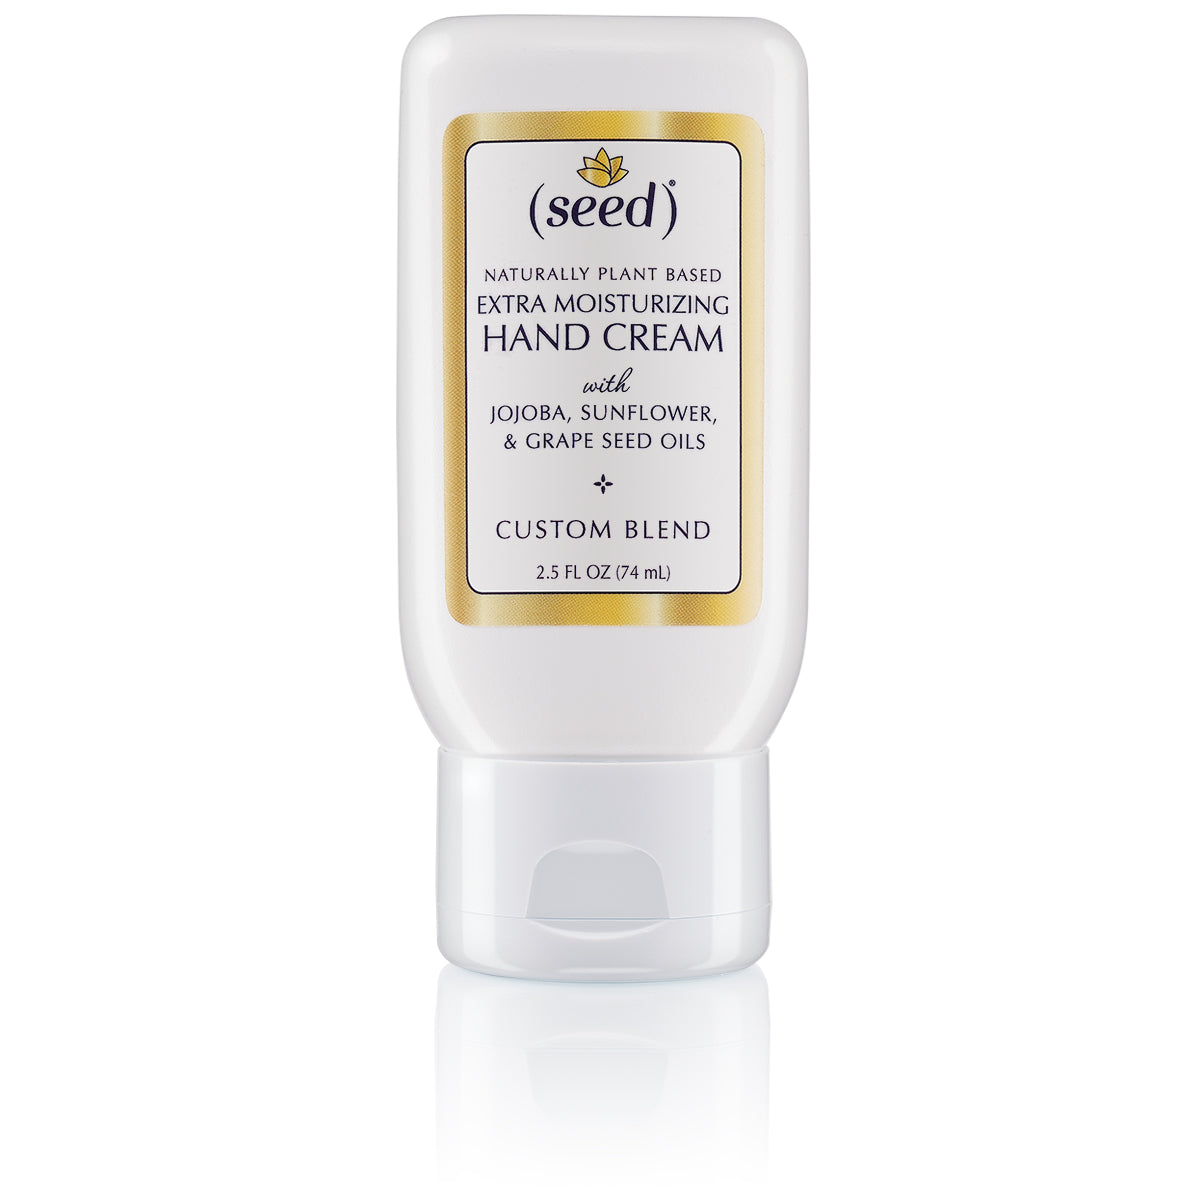 Seed Custom Blend Extra Moisturizing Hand Cream, non greasy with your favorite essential oils